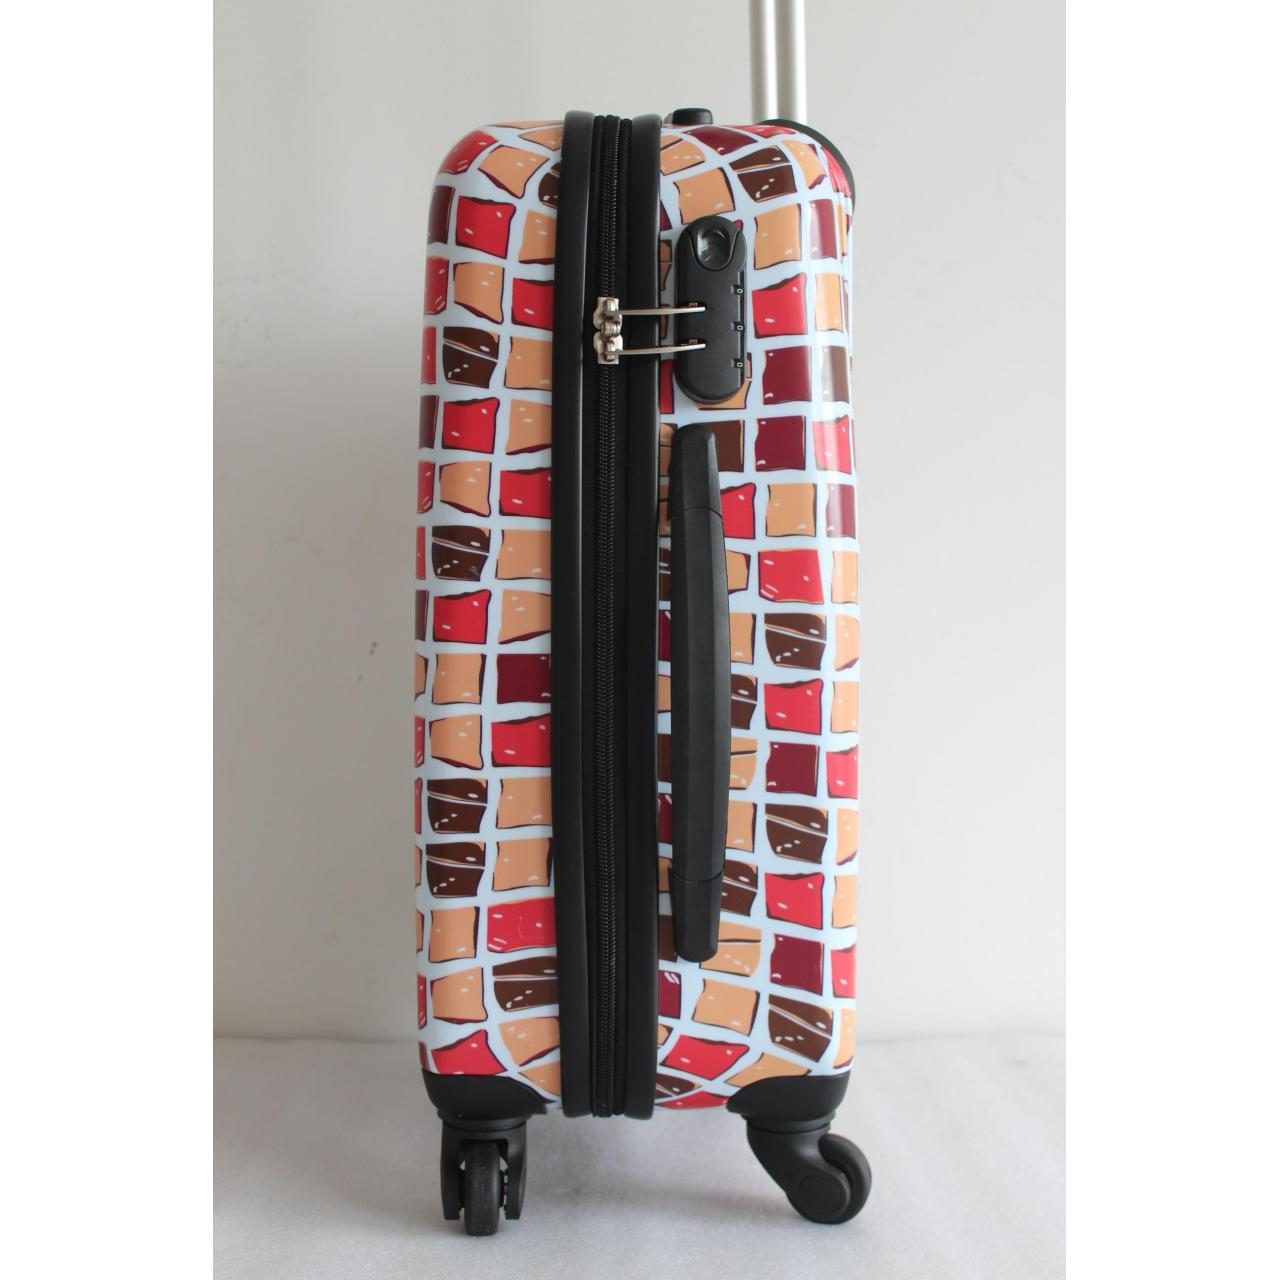 yanteng hard case luggage with well printing